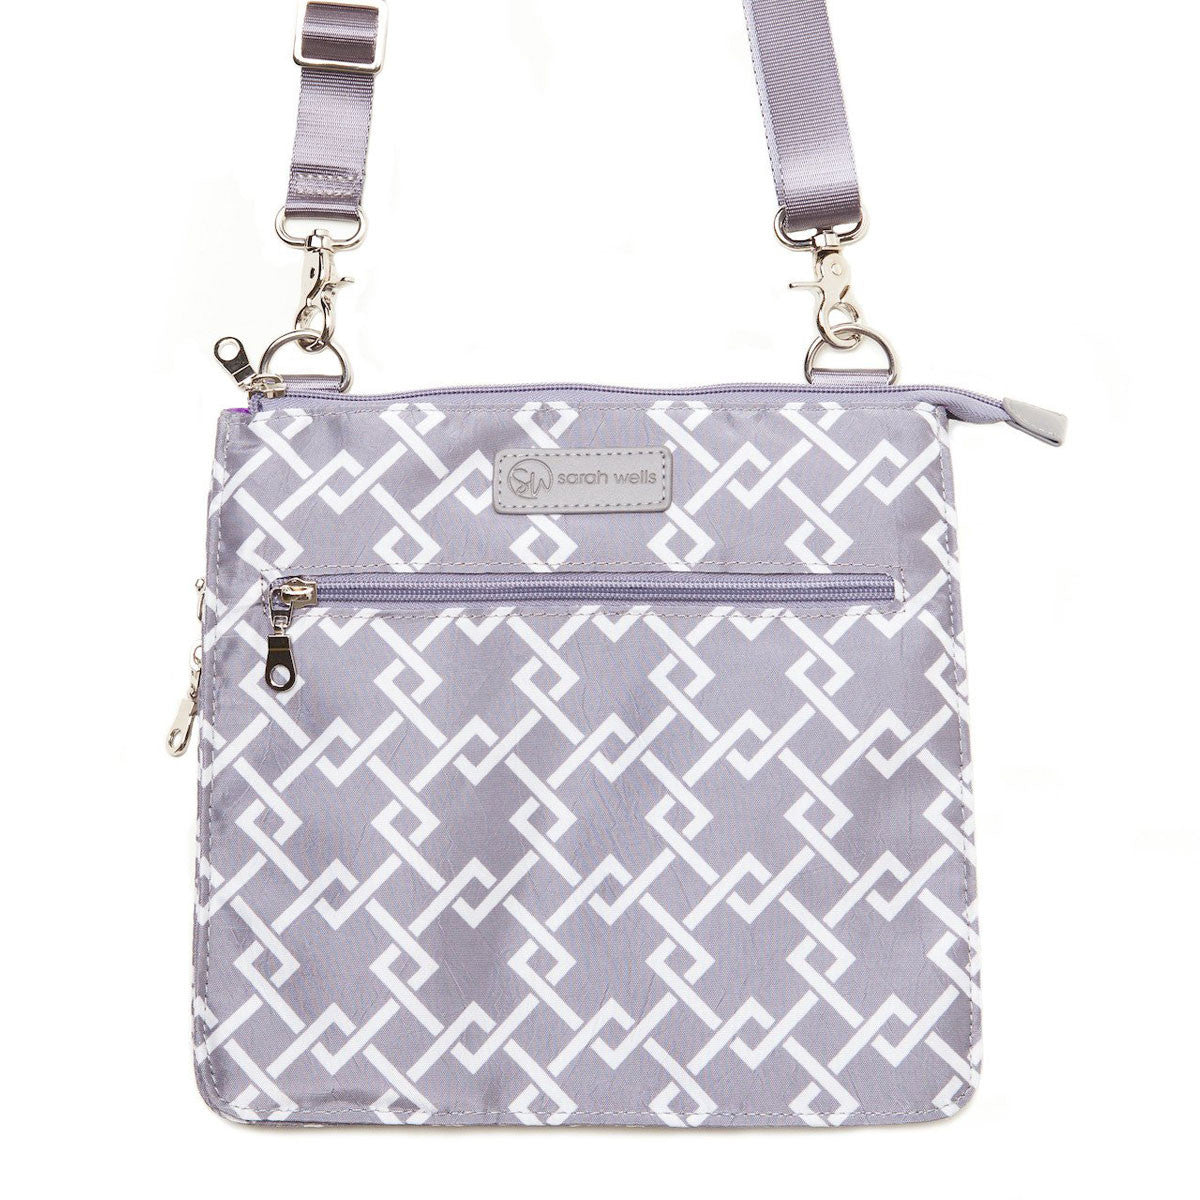 MheartM (Gray) / Breast Pump Bags & Accessories from Sarah Wells